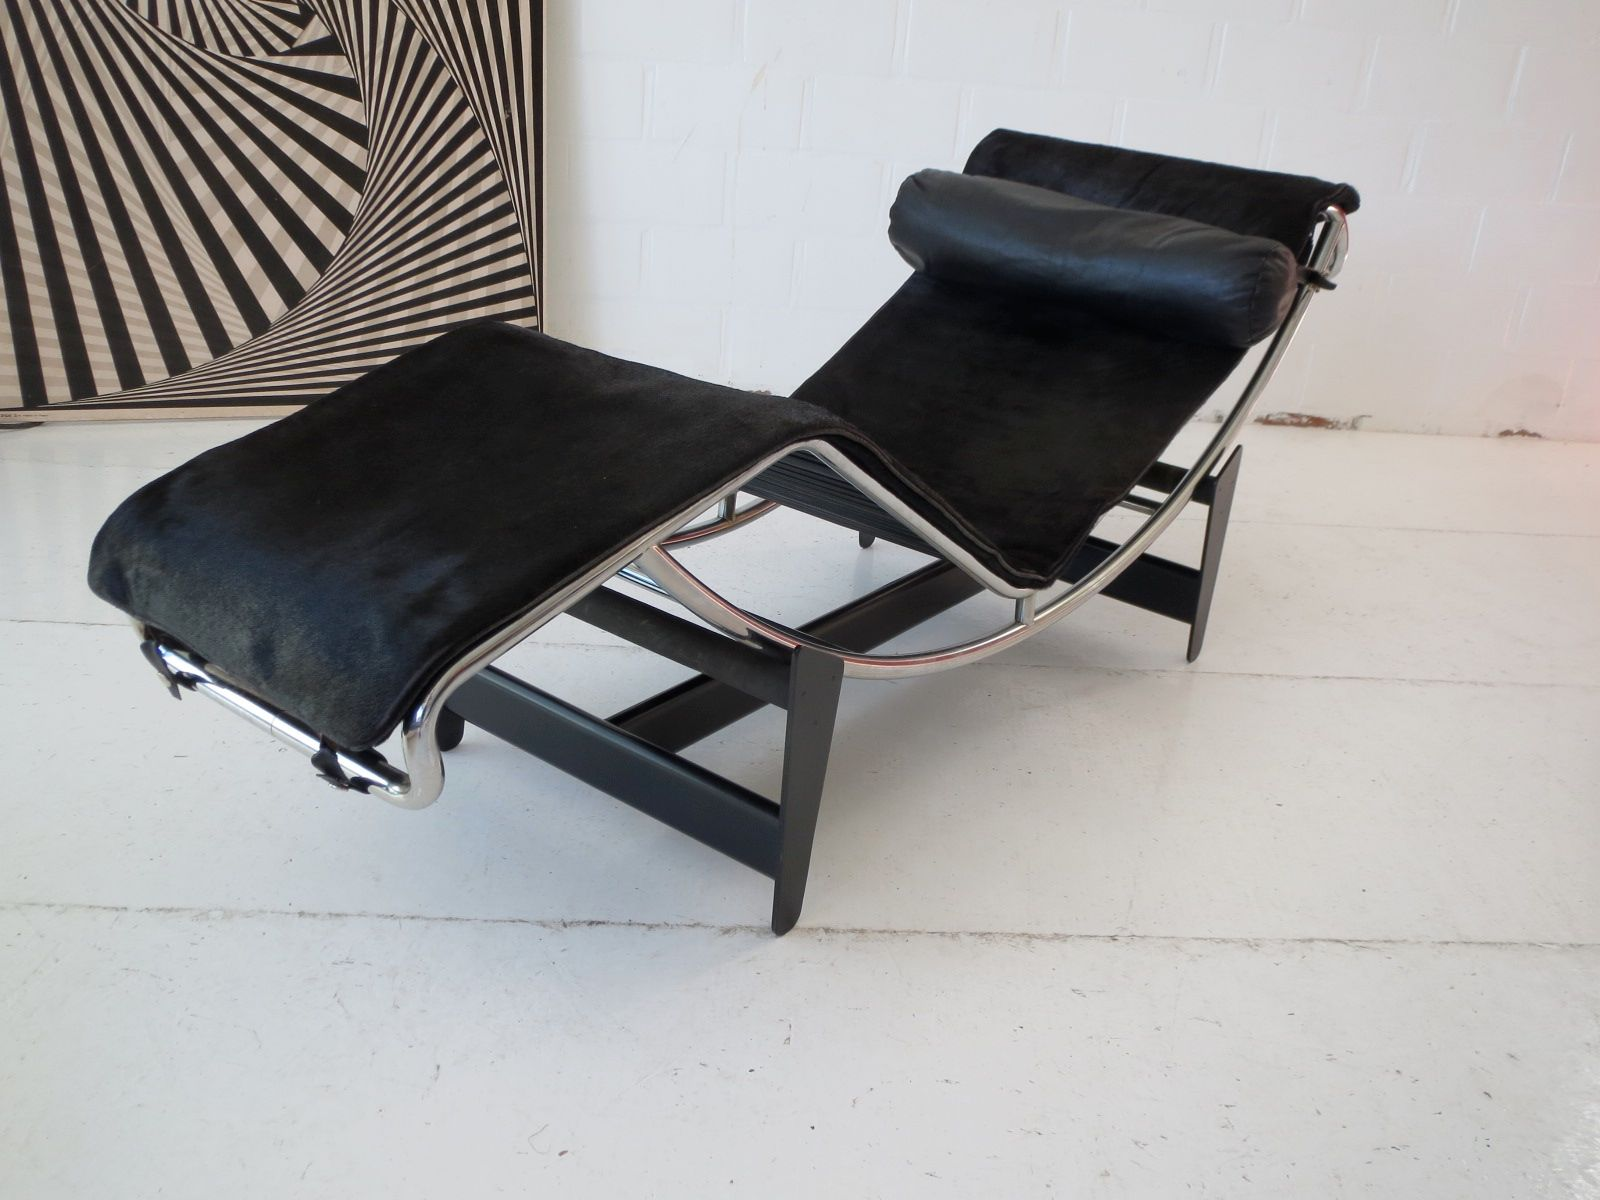 early under 750 numbered lc4 chaise longue by le